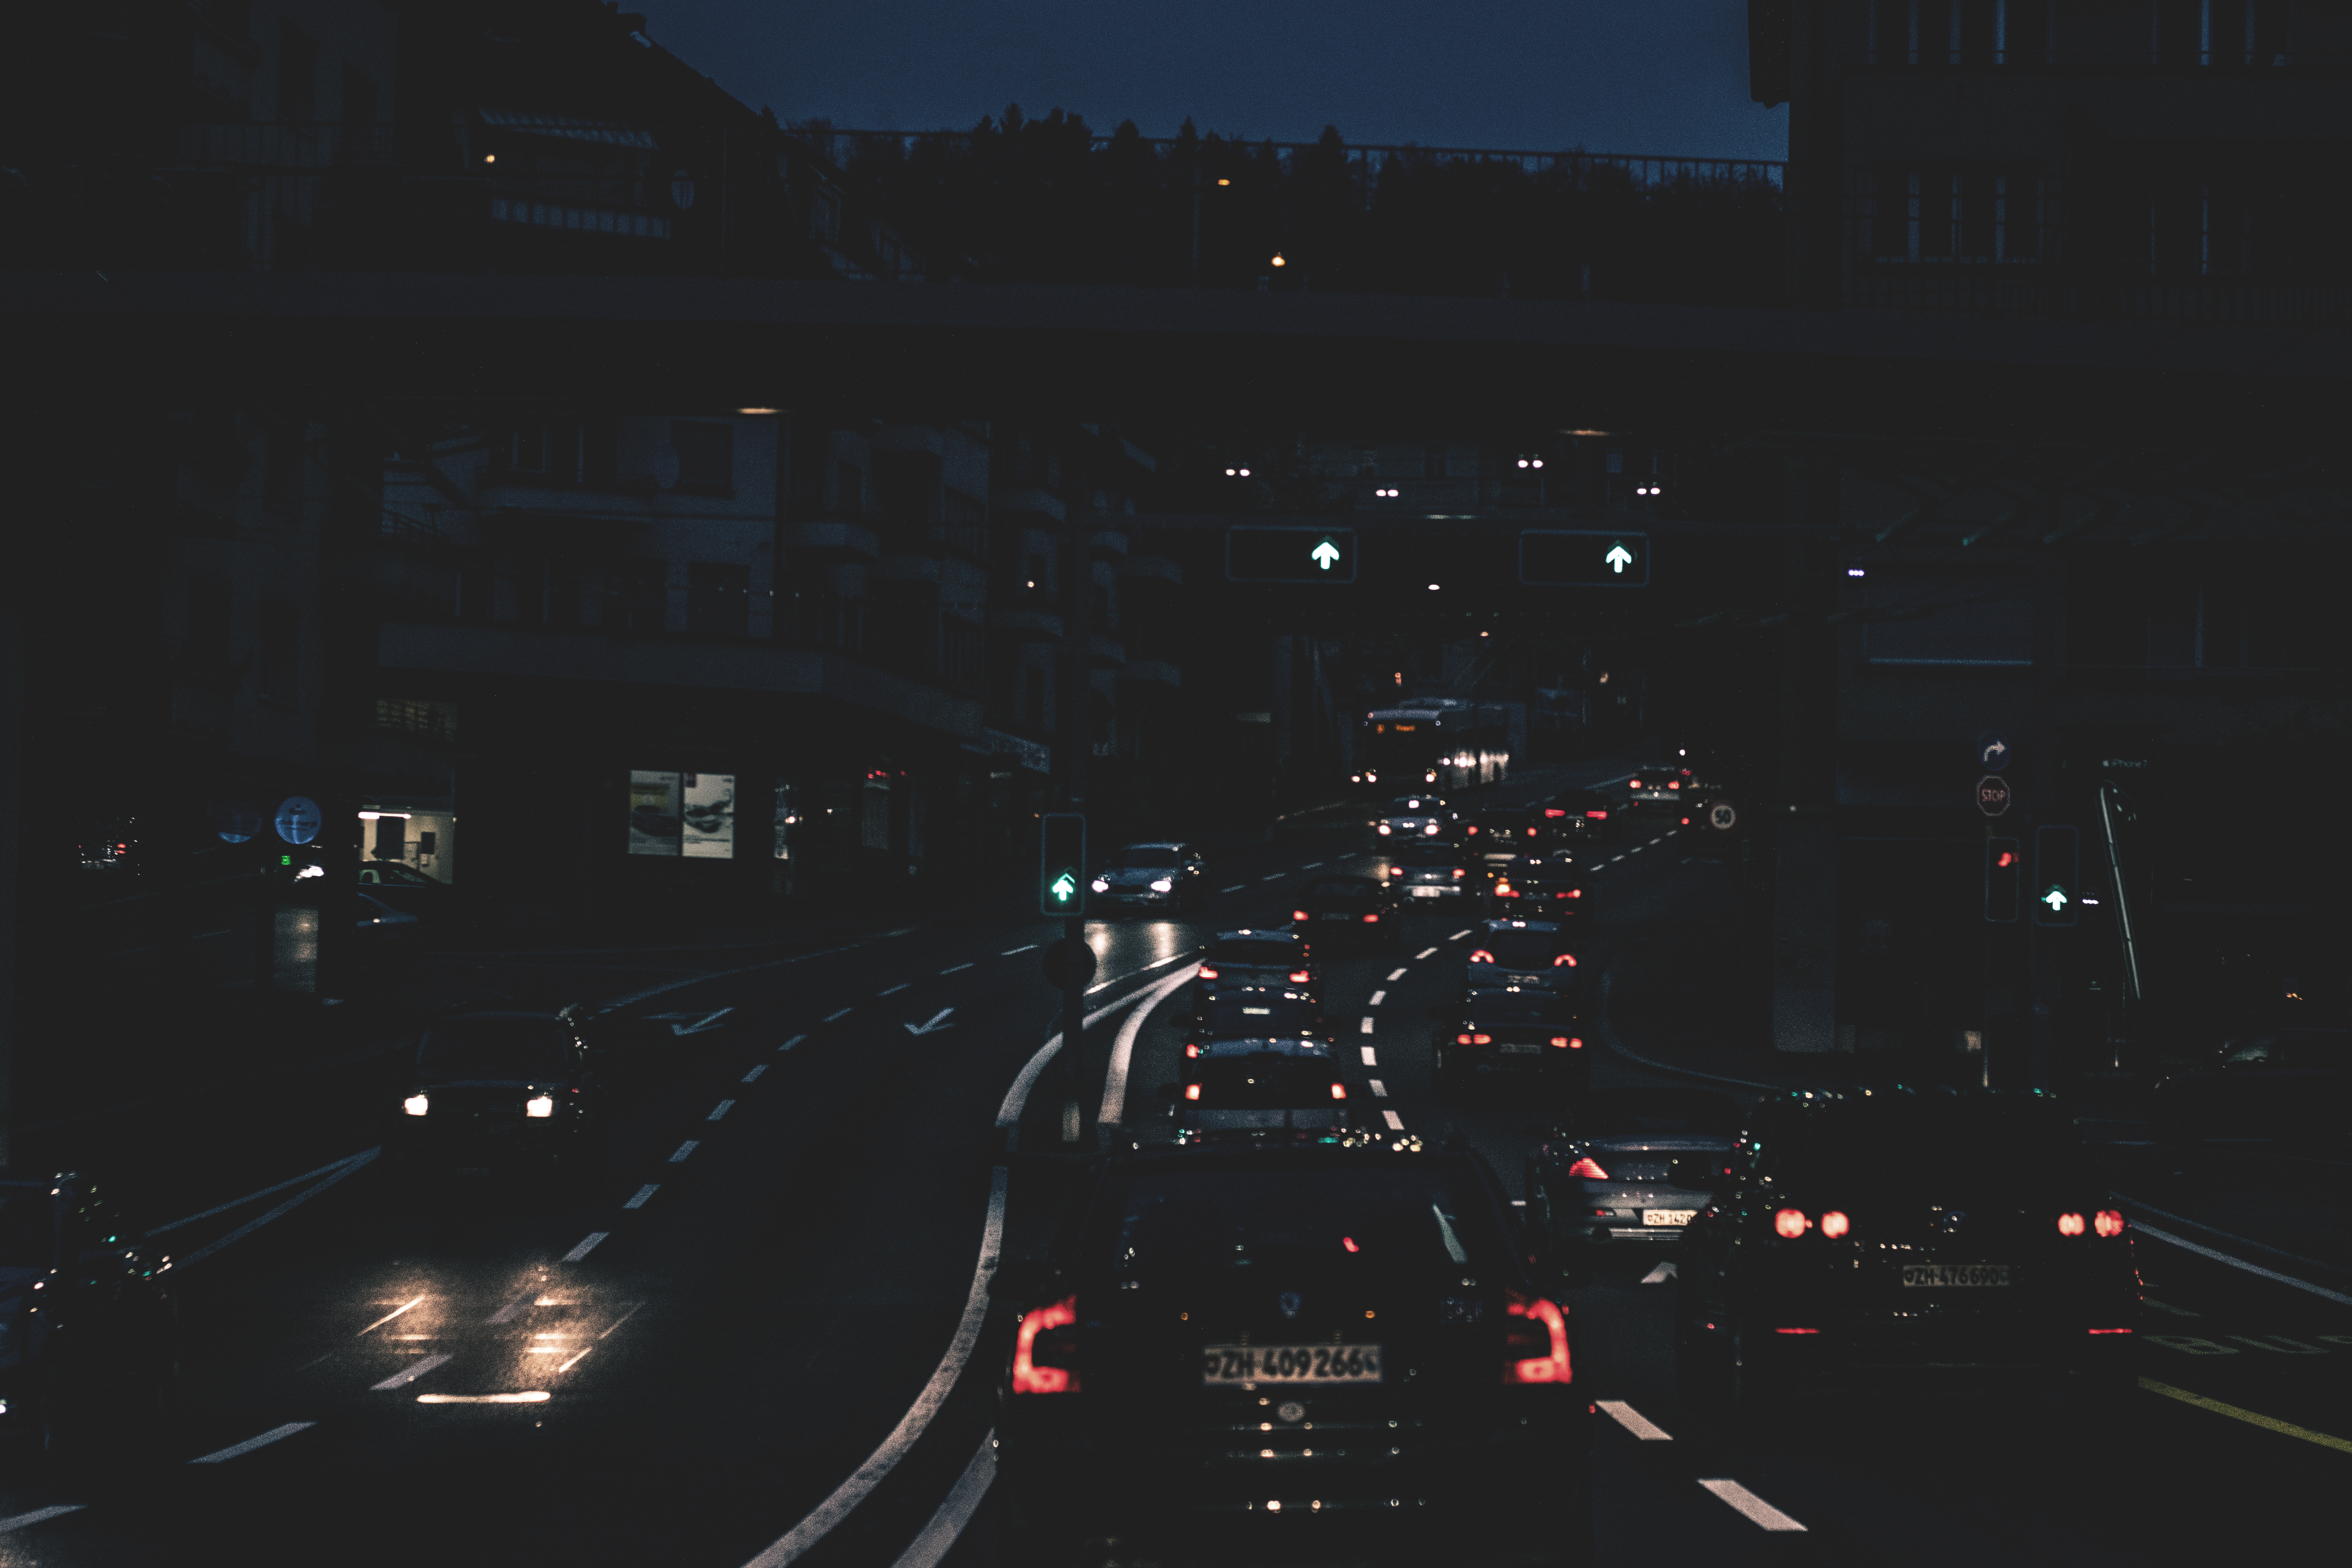 Lighted Street With Cars at Night